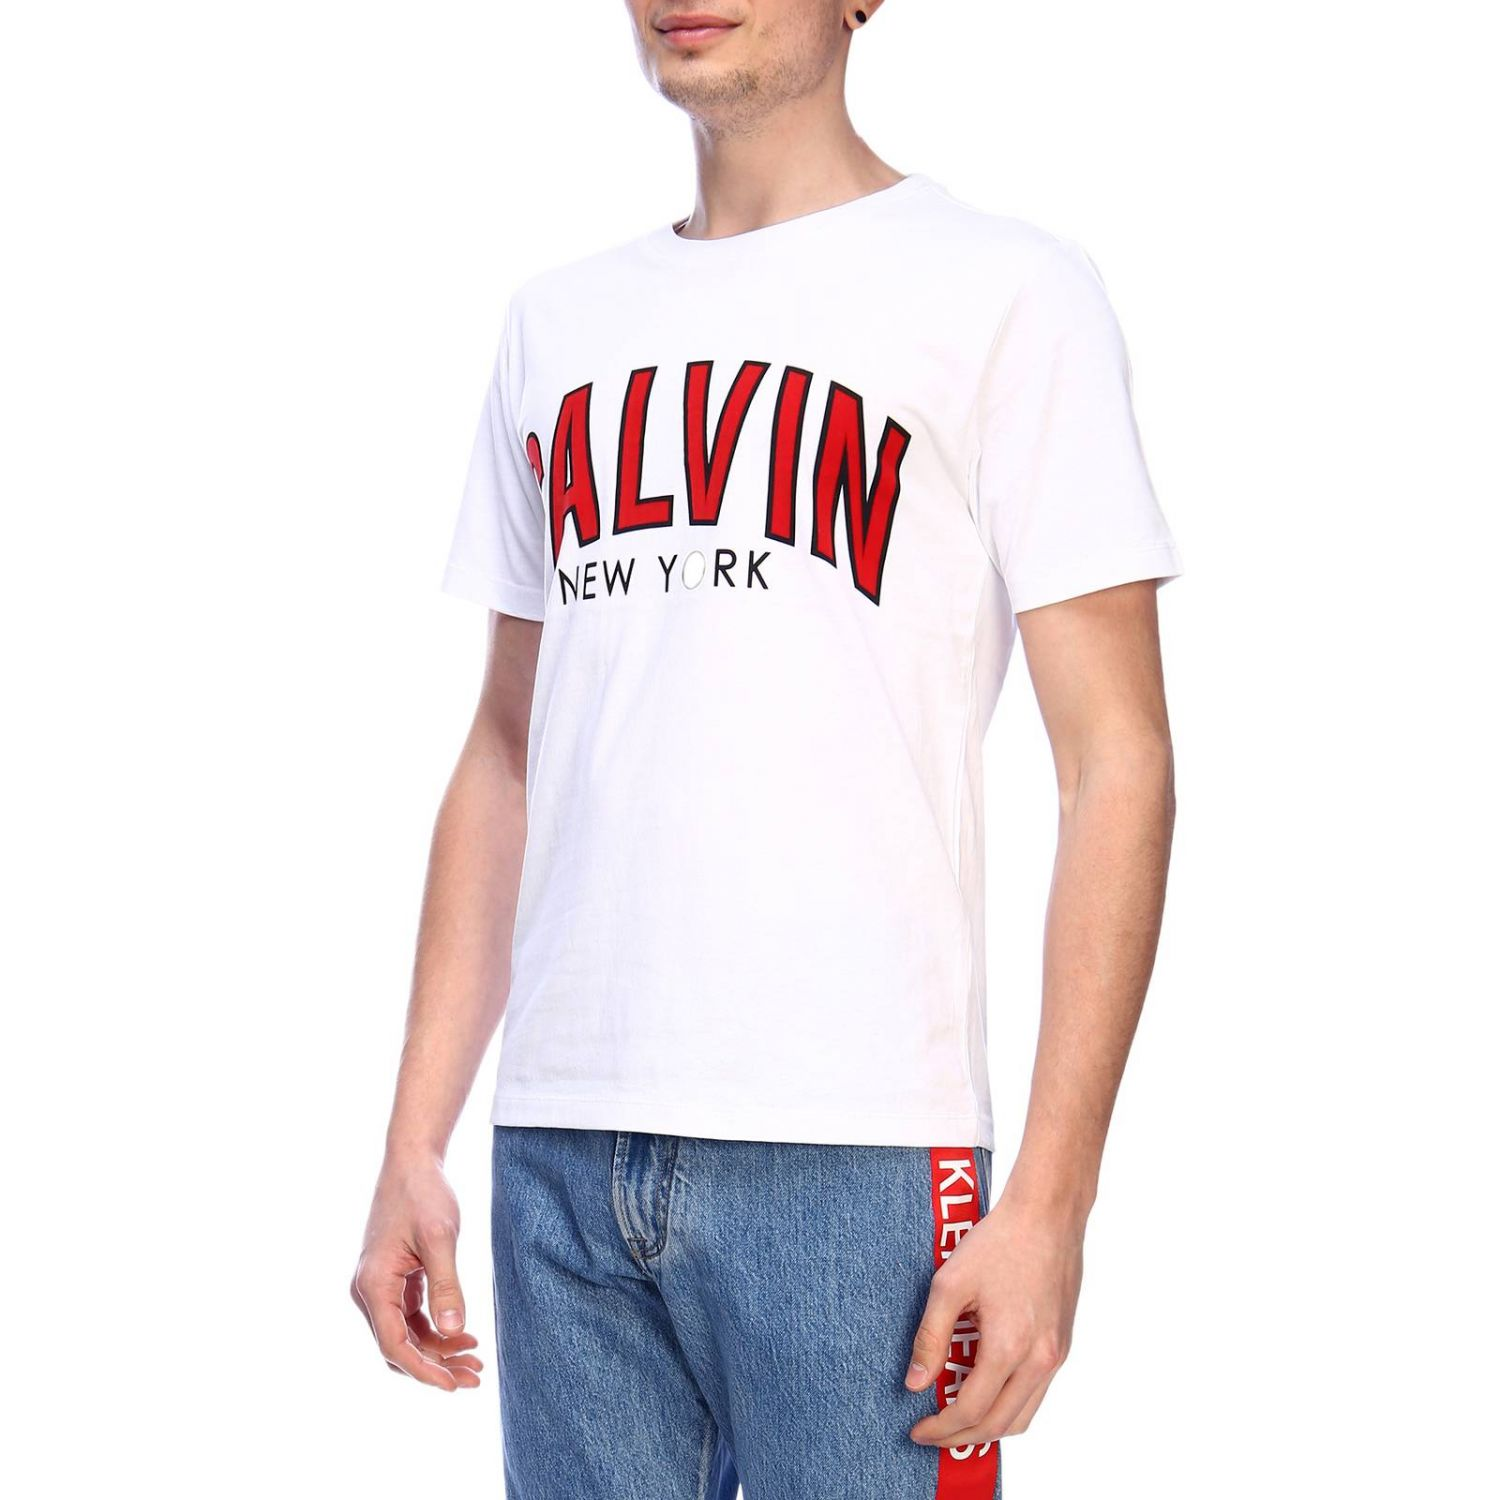 T-shirt men Calvin Klein Jeans white 2